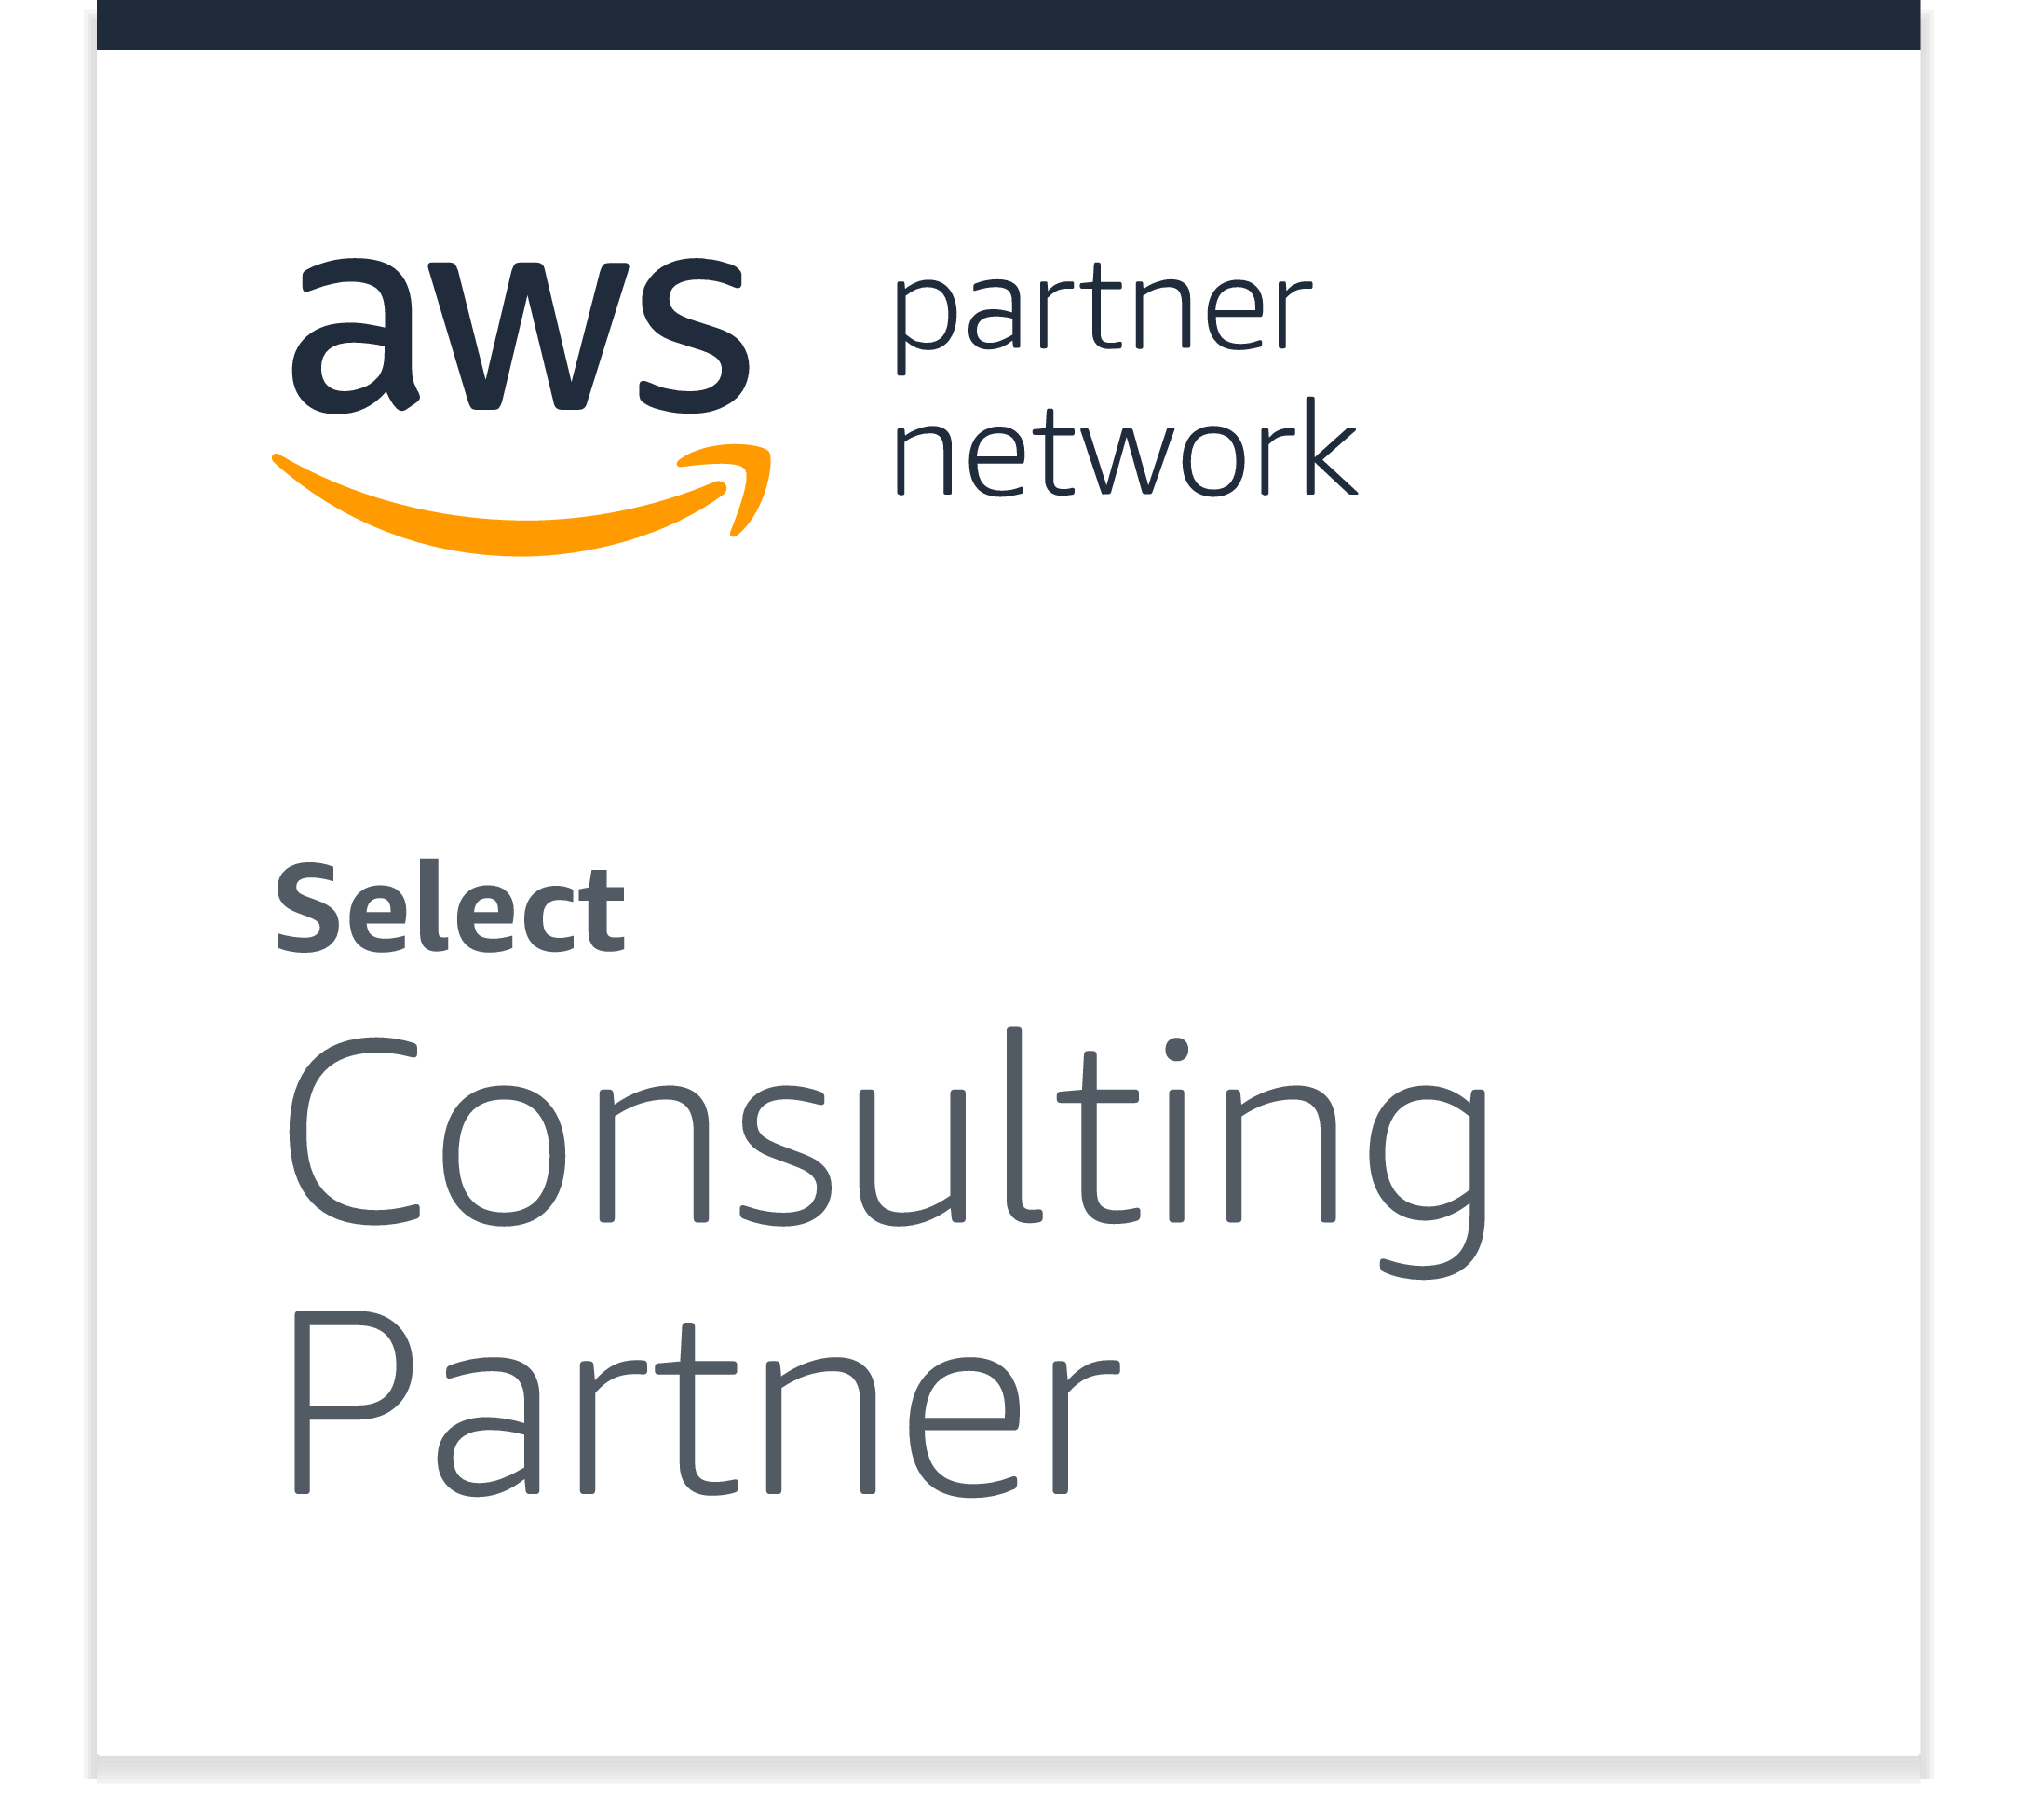 Select-Consulting-Partner-Certificate.png